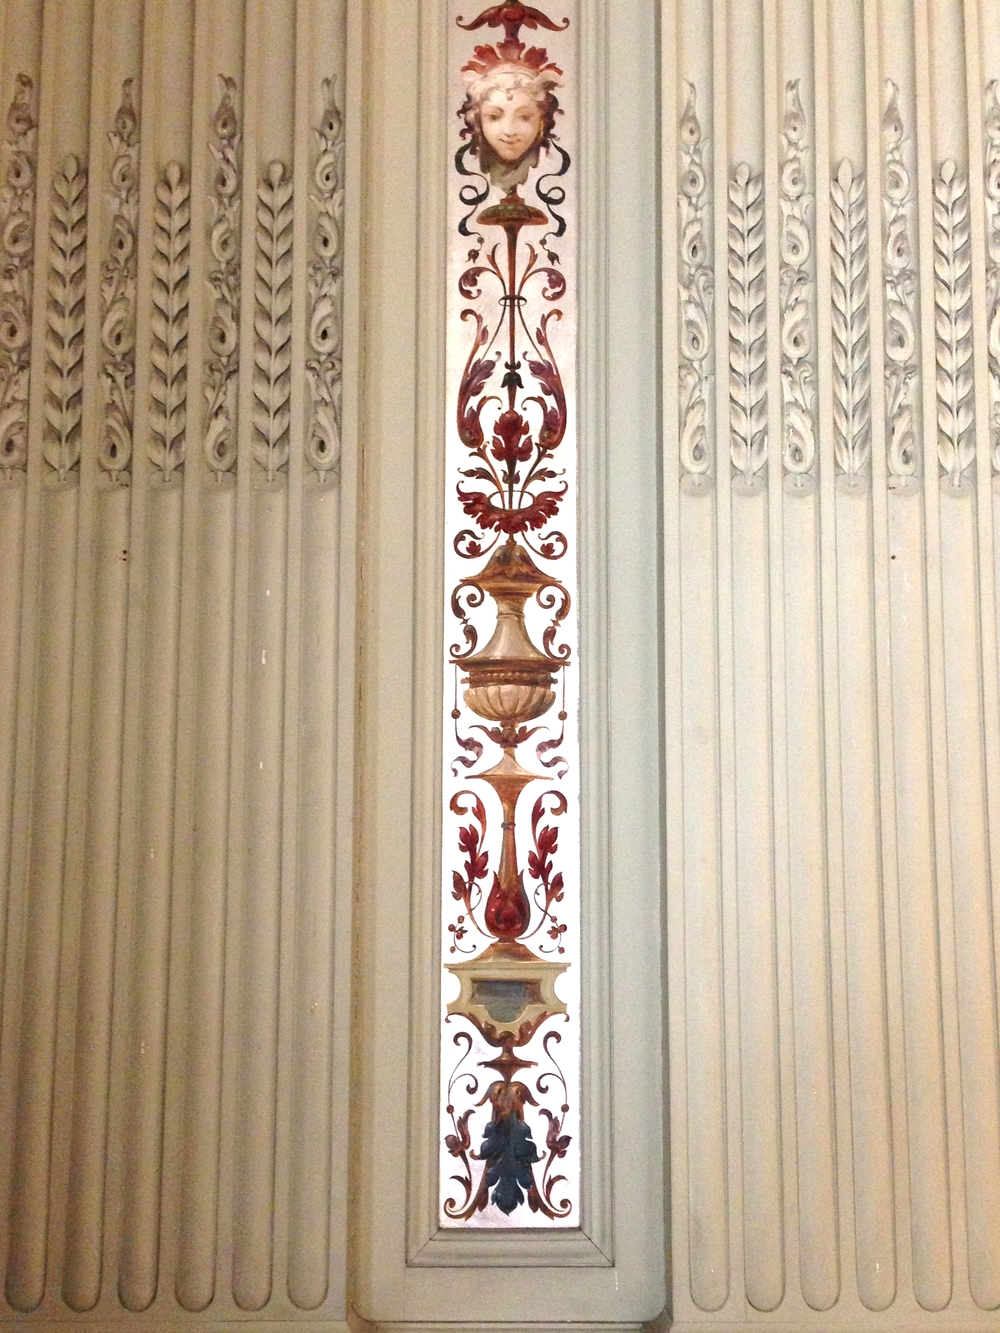 Detail of wall paneling in the Morning Room.